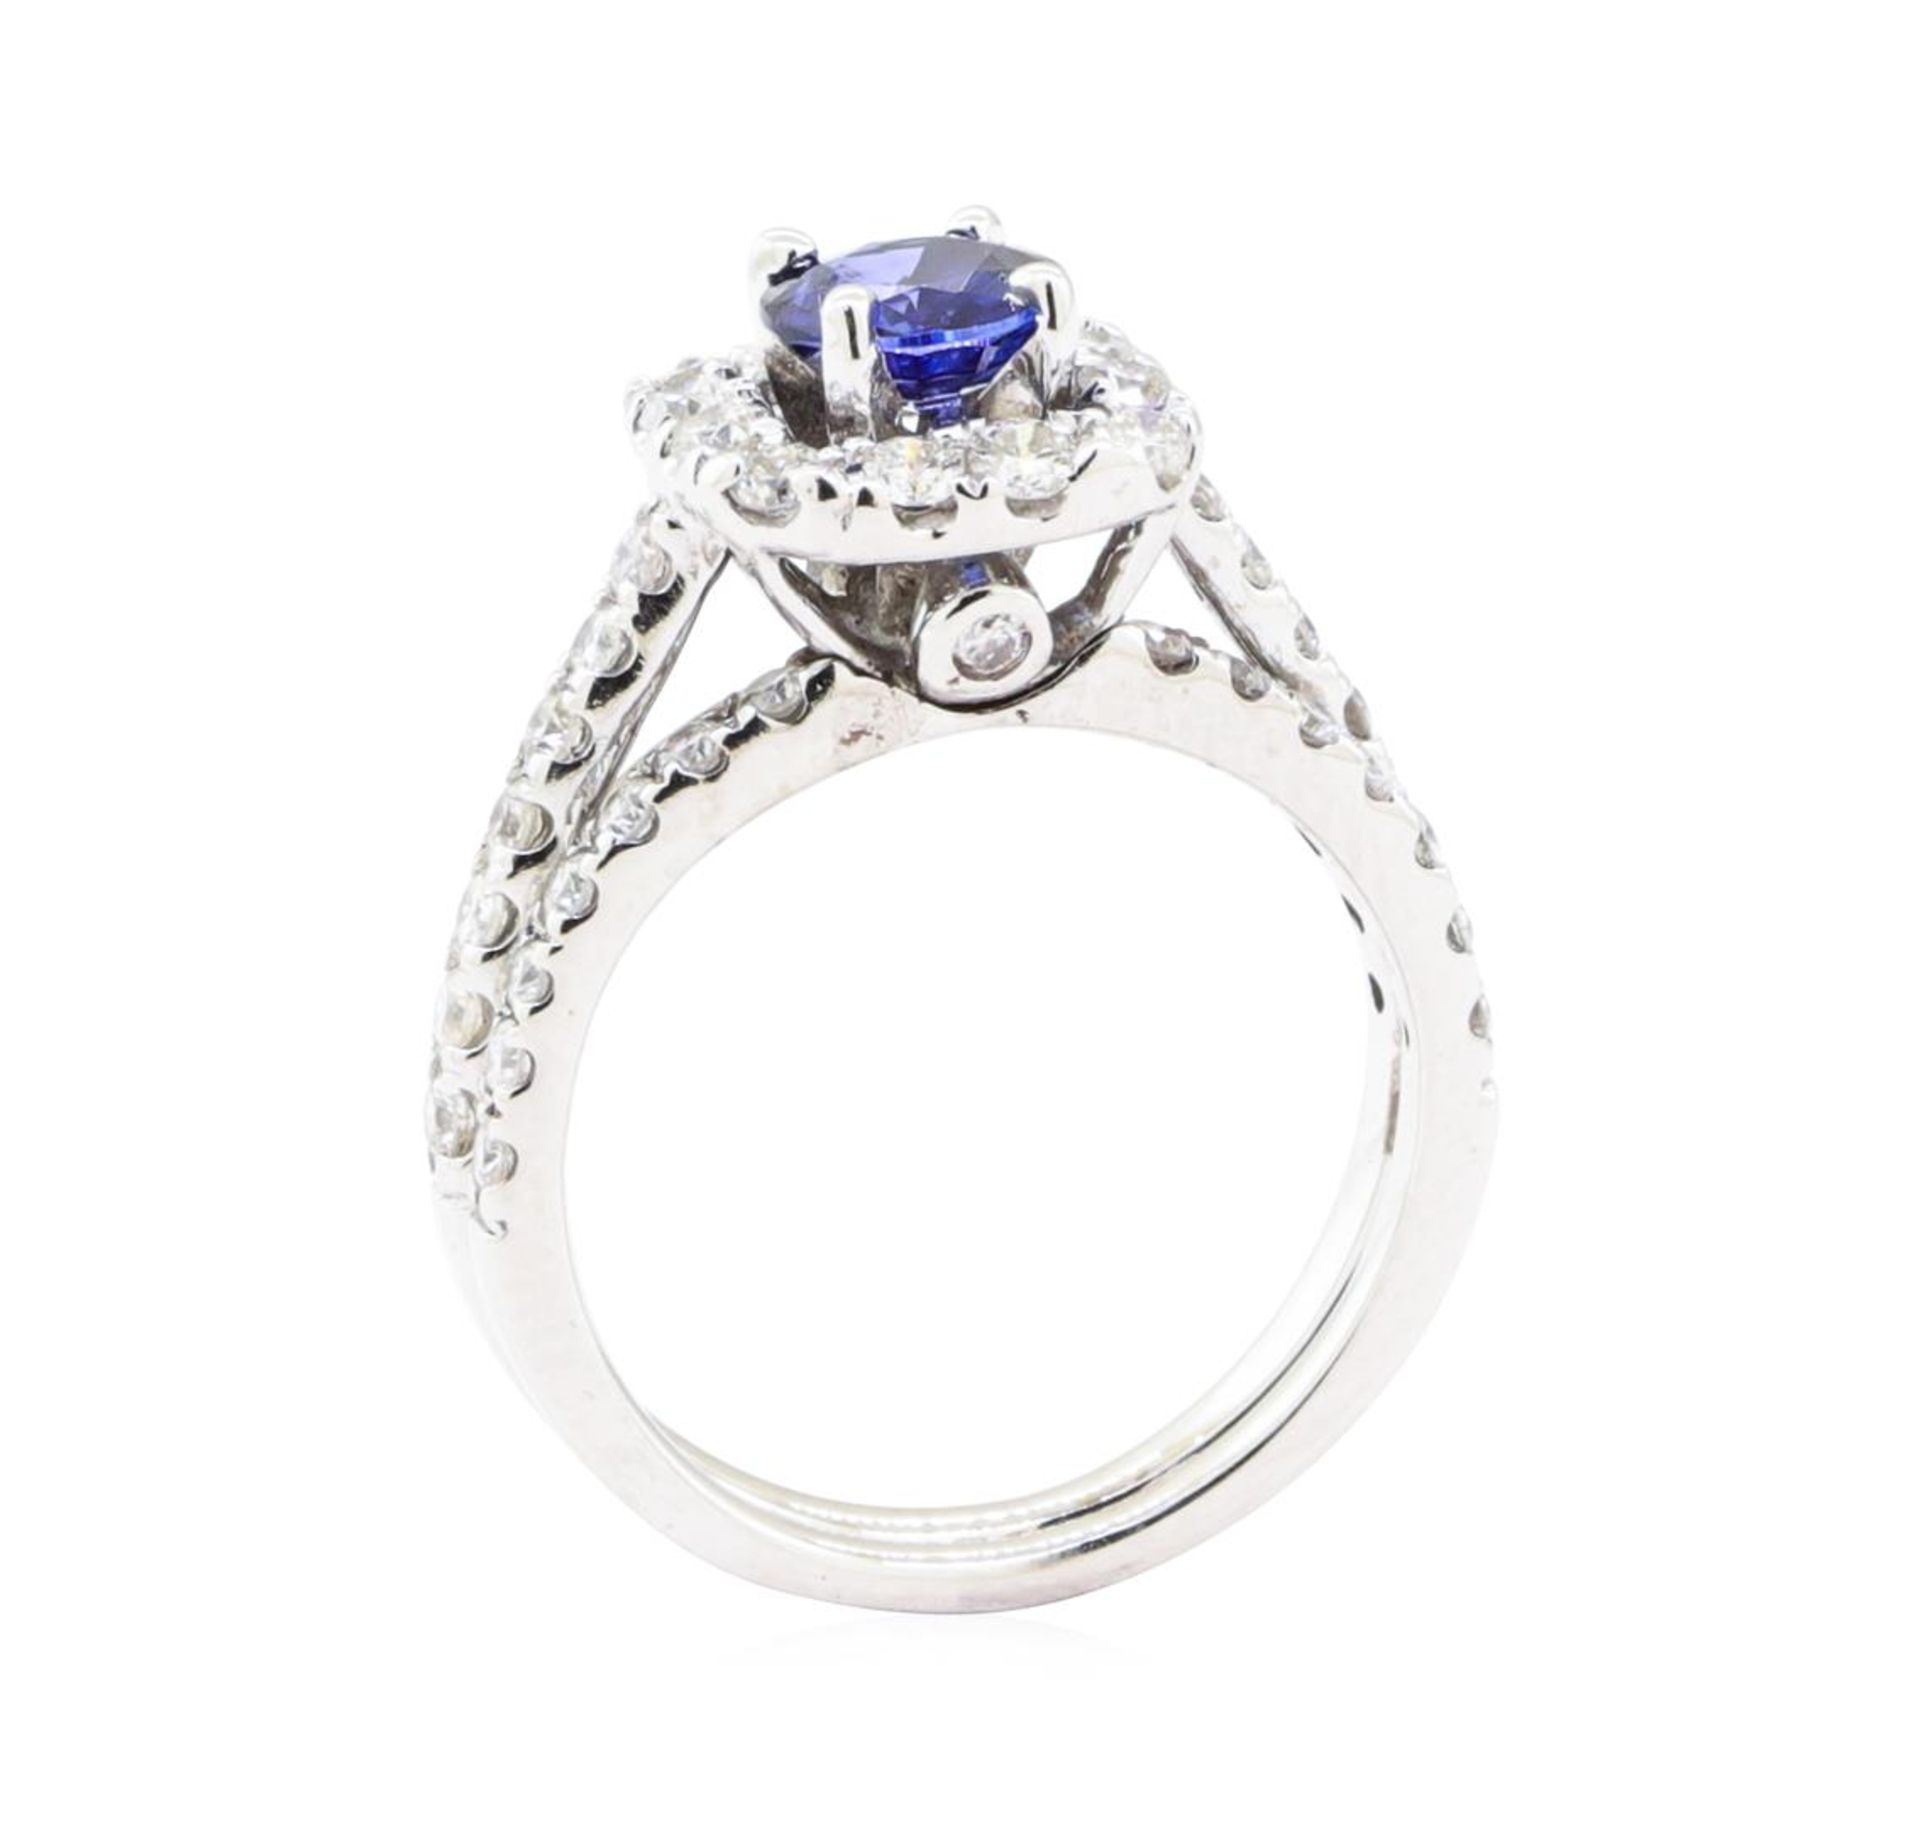 1.66 ctw Sapphire And Diamond Ring And Attached Band - 14KT White Gold - Image 4 of 5